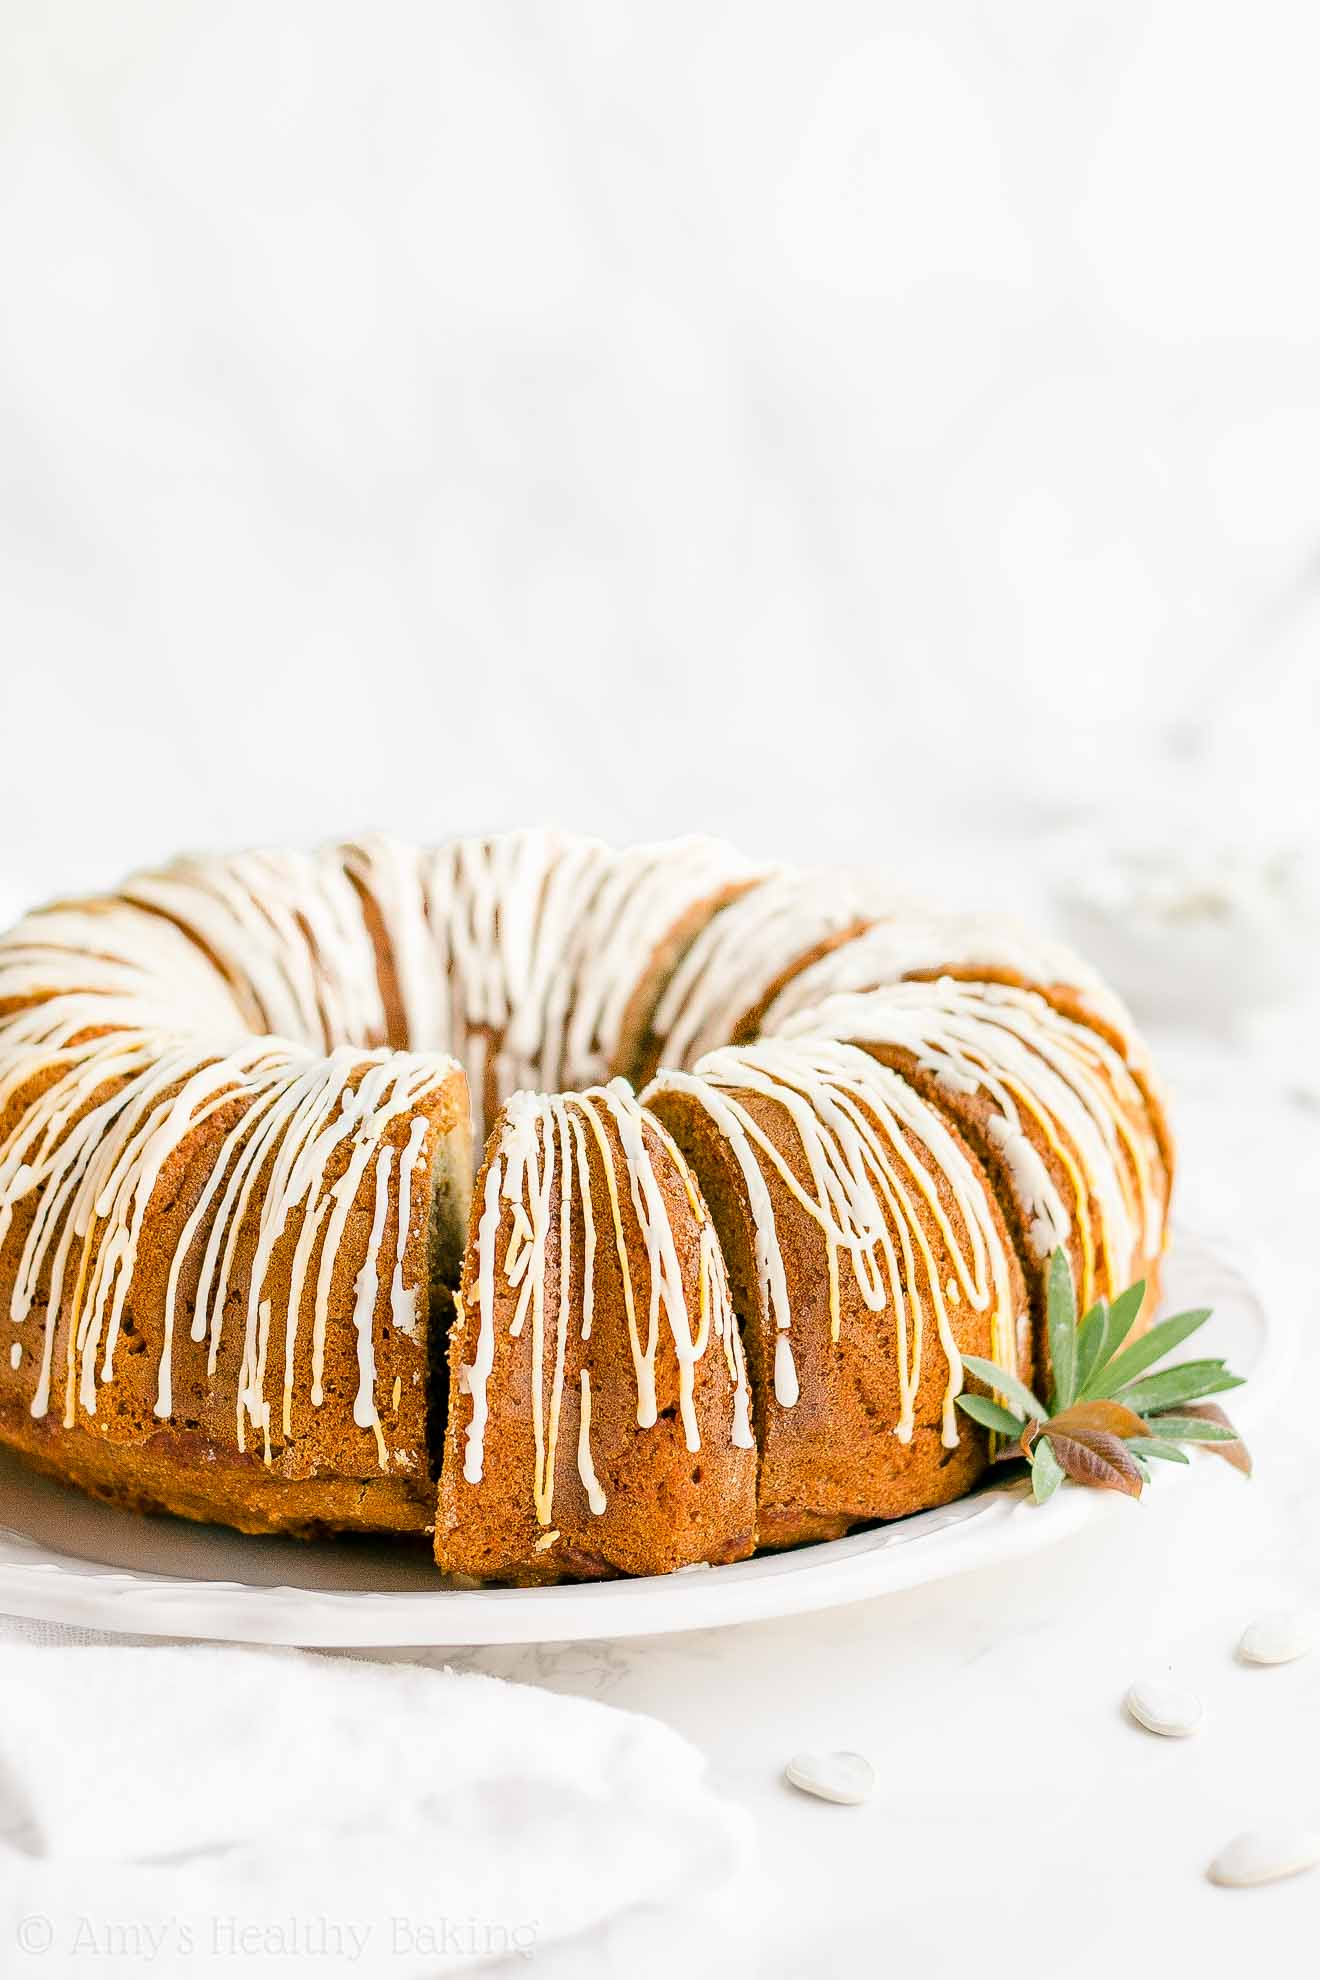 Easy Healthy Homemade Low Fat Low Calorie Pumpkin Bundt Cake